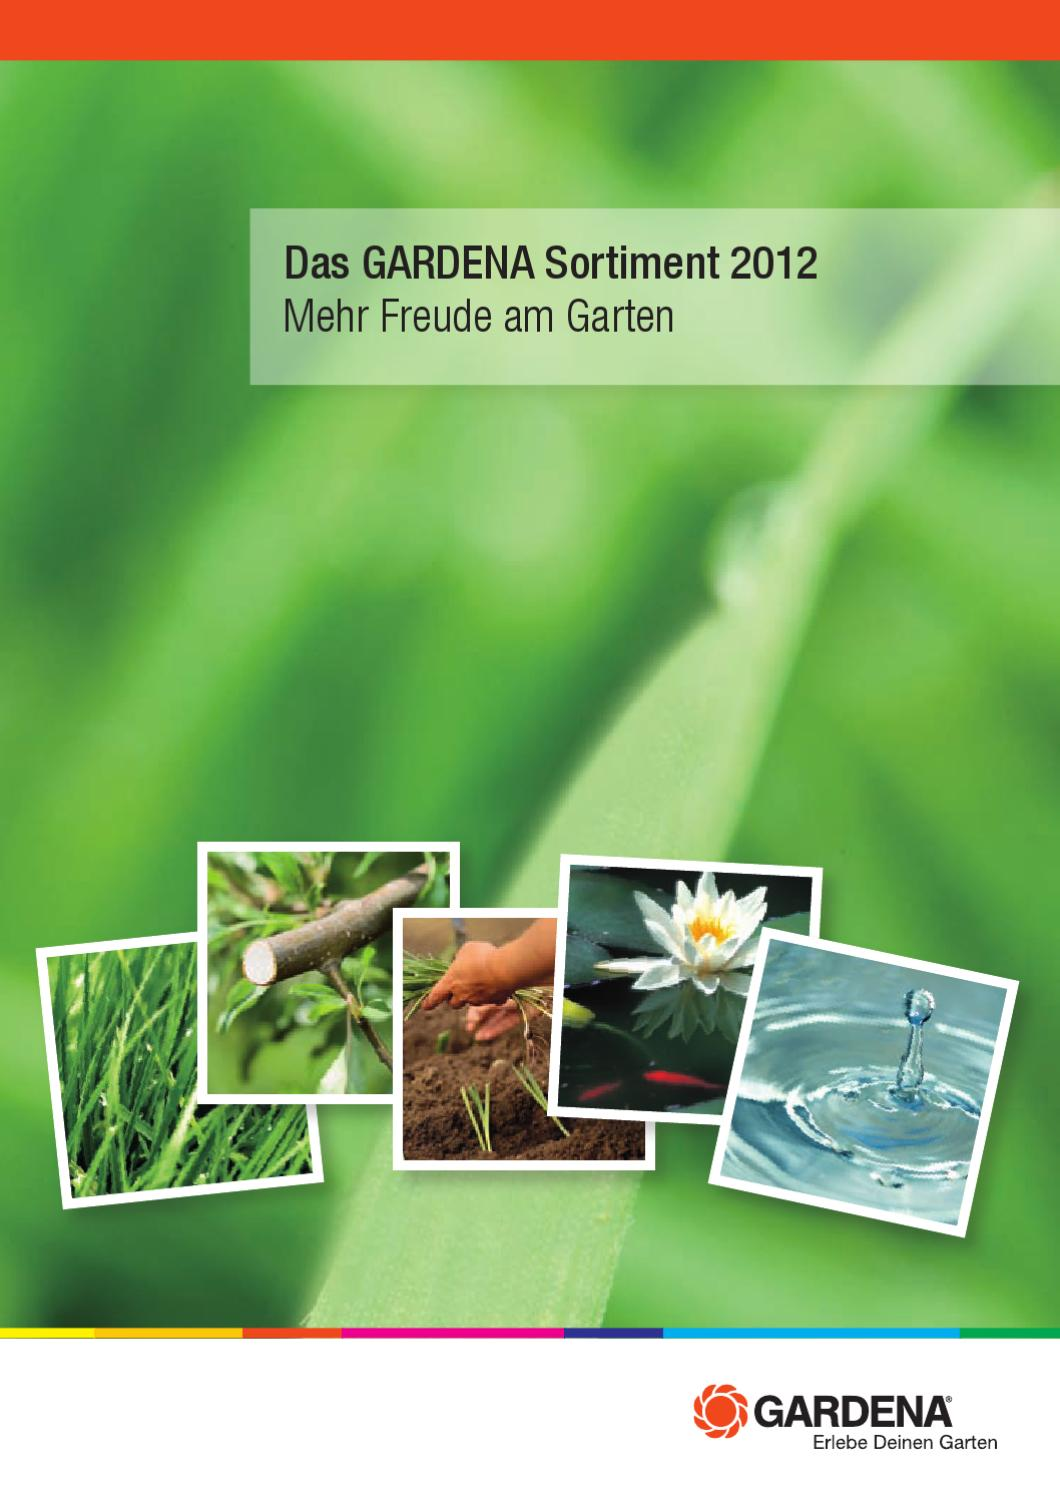 Gardena Assortment Brochure 2012 Austria By Husqvarna Ab Issuu